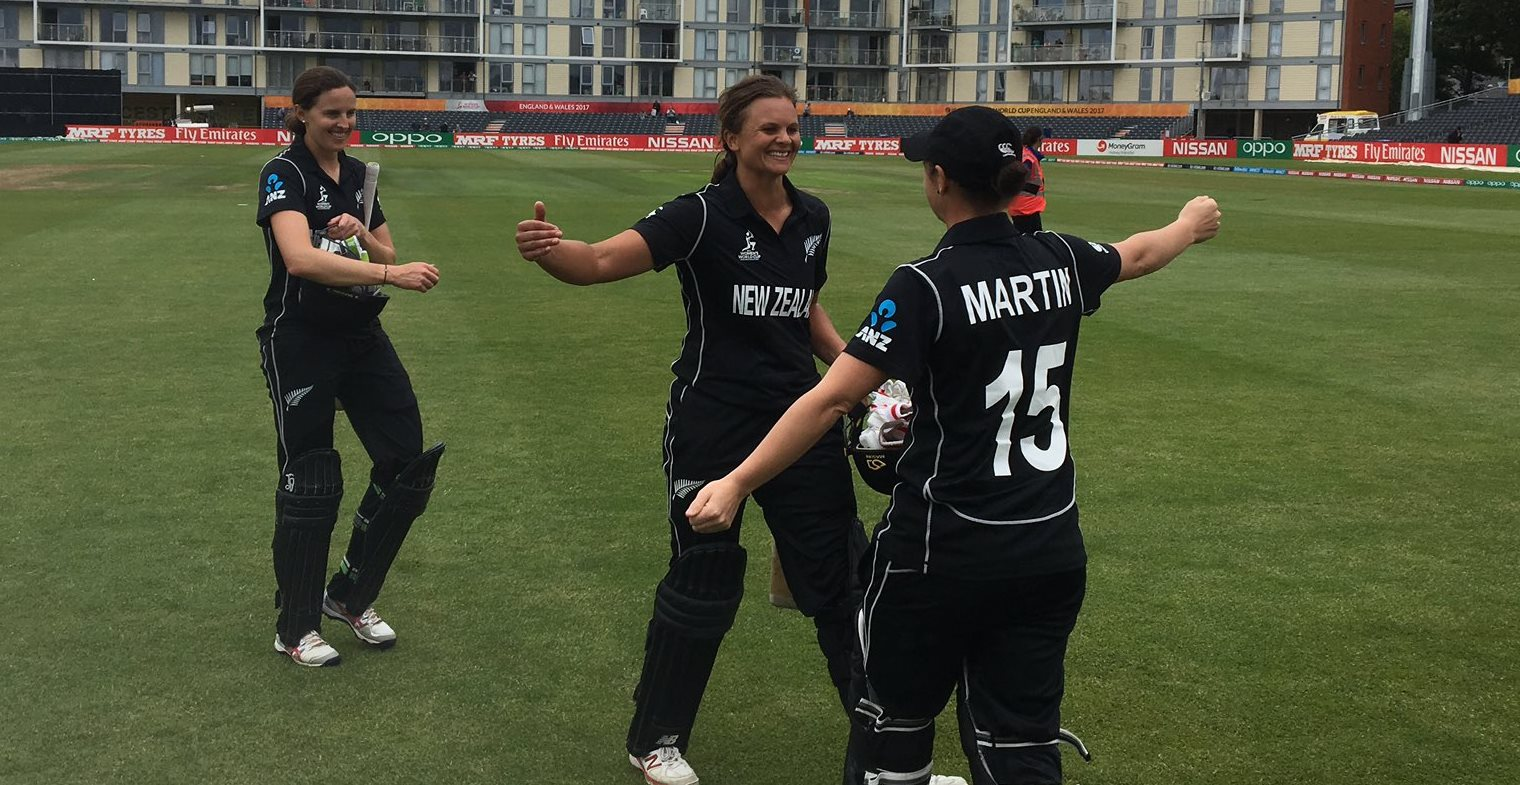 White Ferns bristol